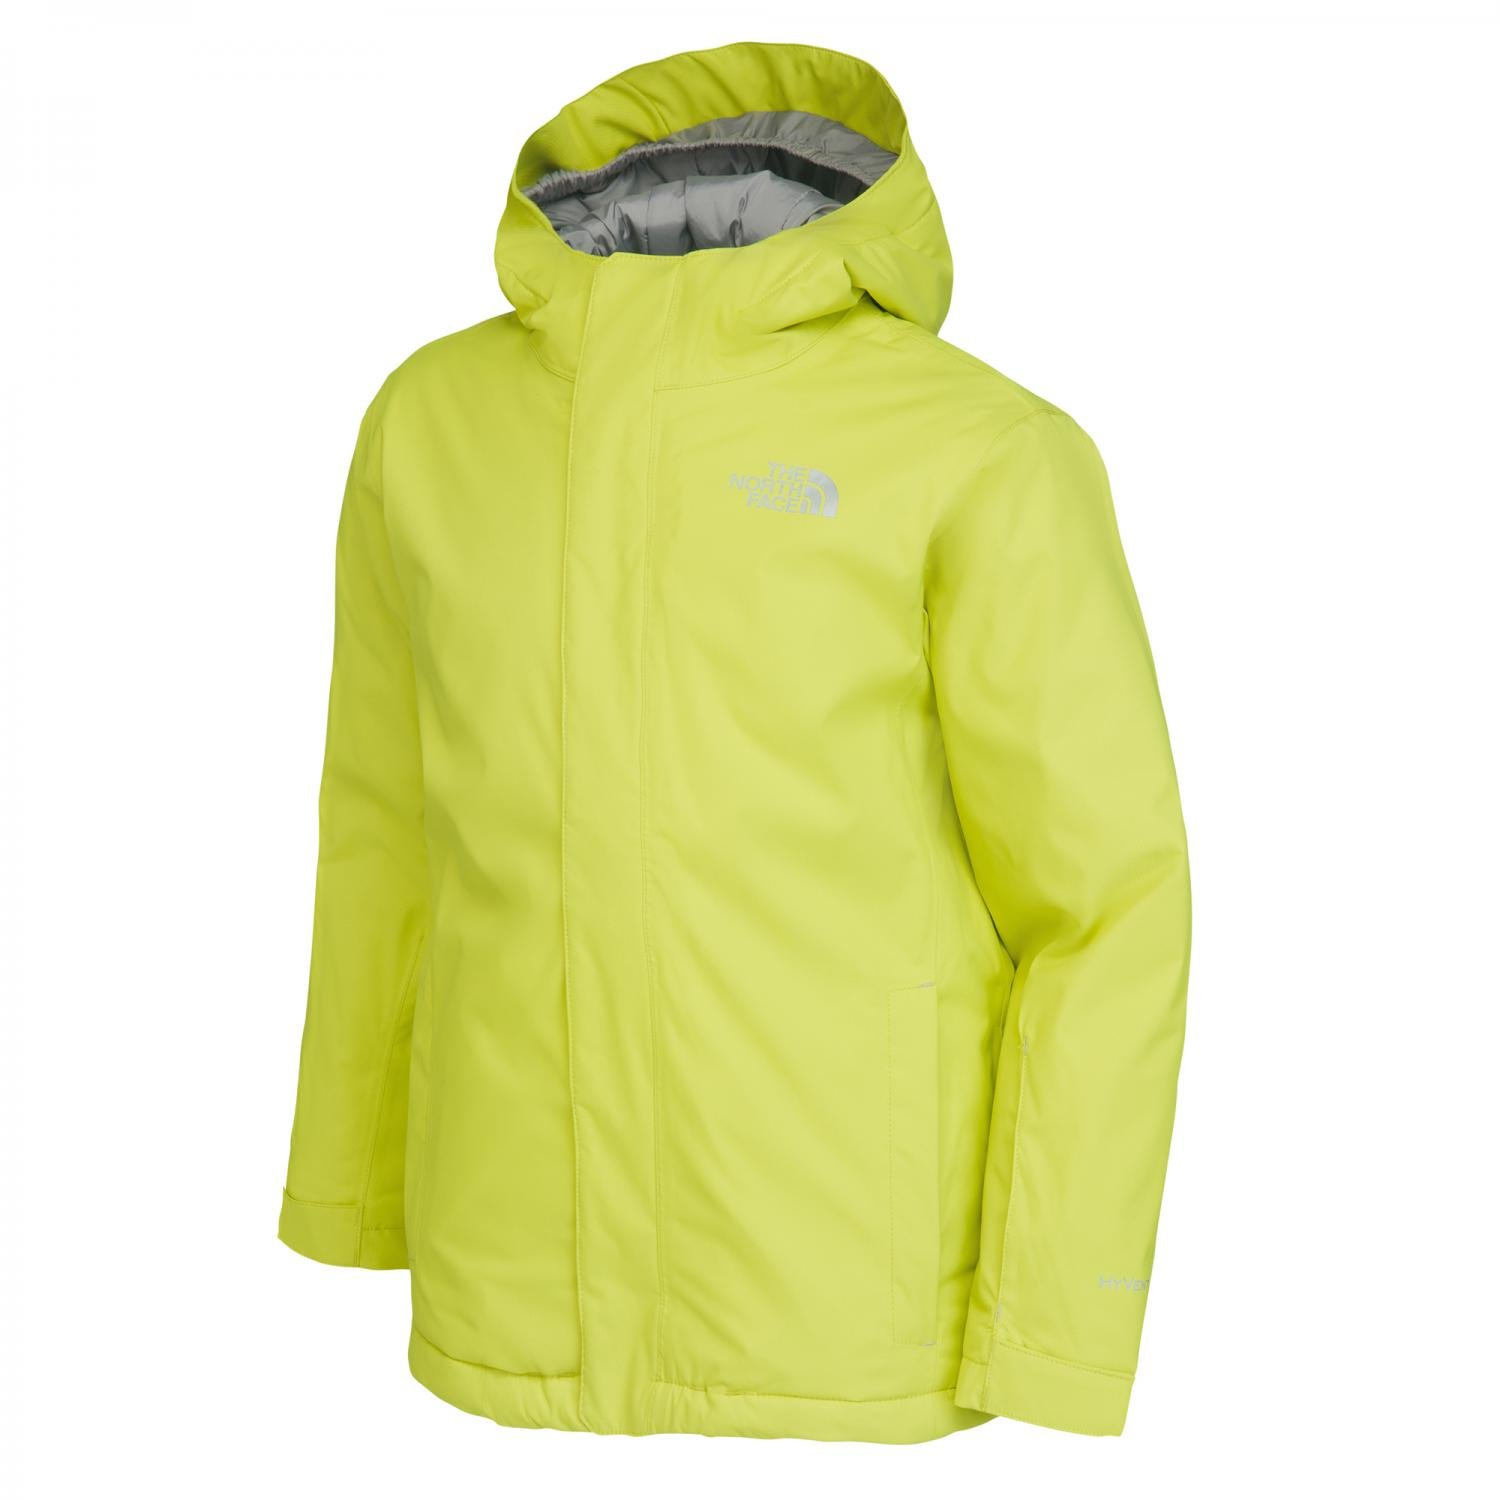 The North Face Kinder Winterjacke Snow Quest CF59 jetzt kaufen